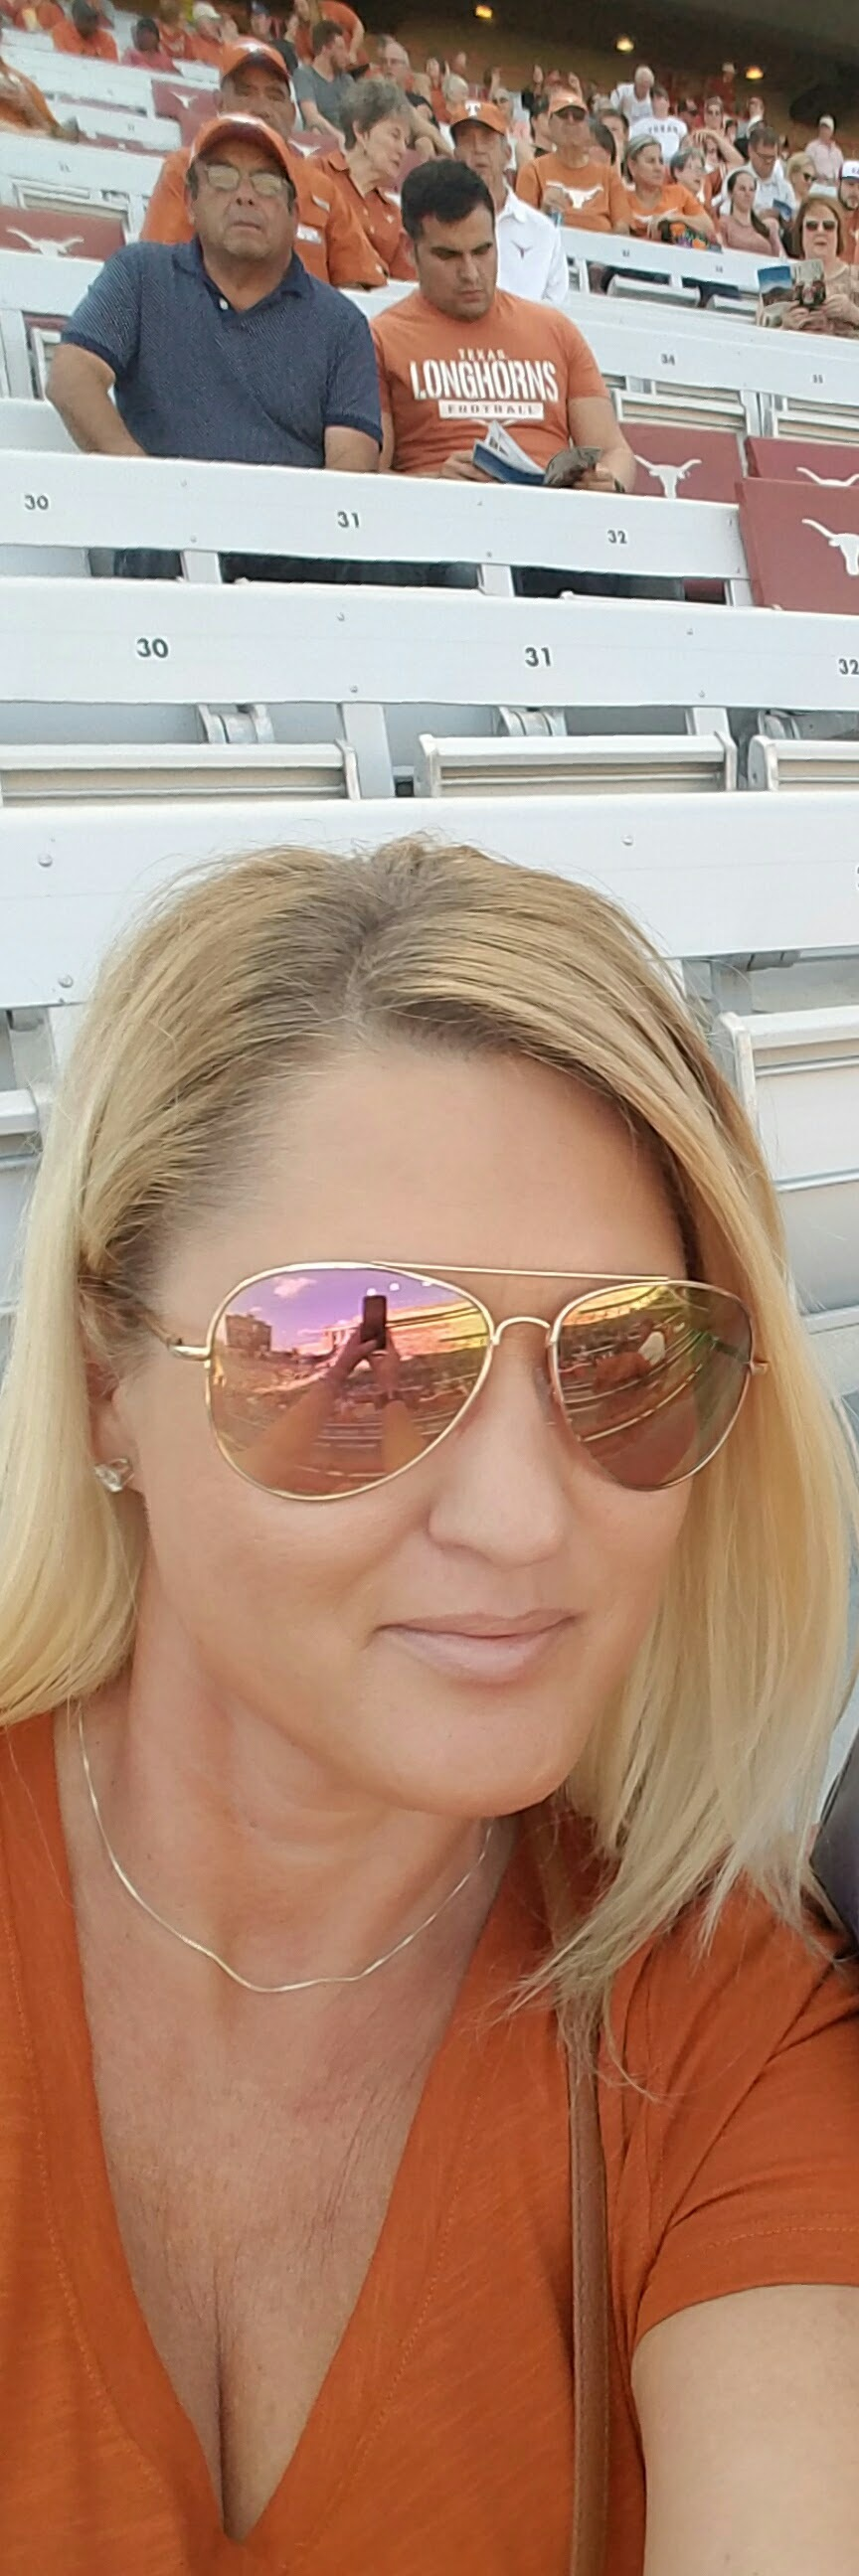 49-year-old, Single From: Austin, TX, United States